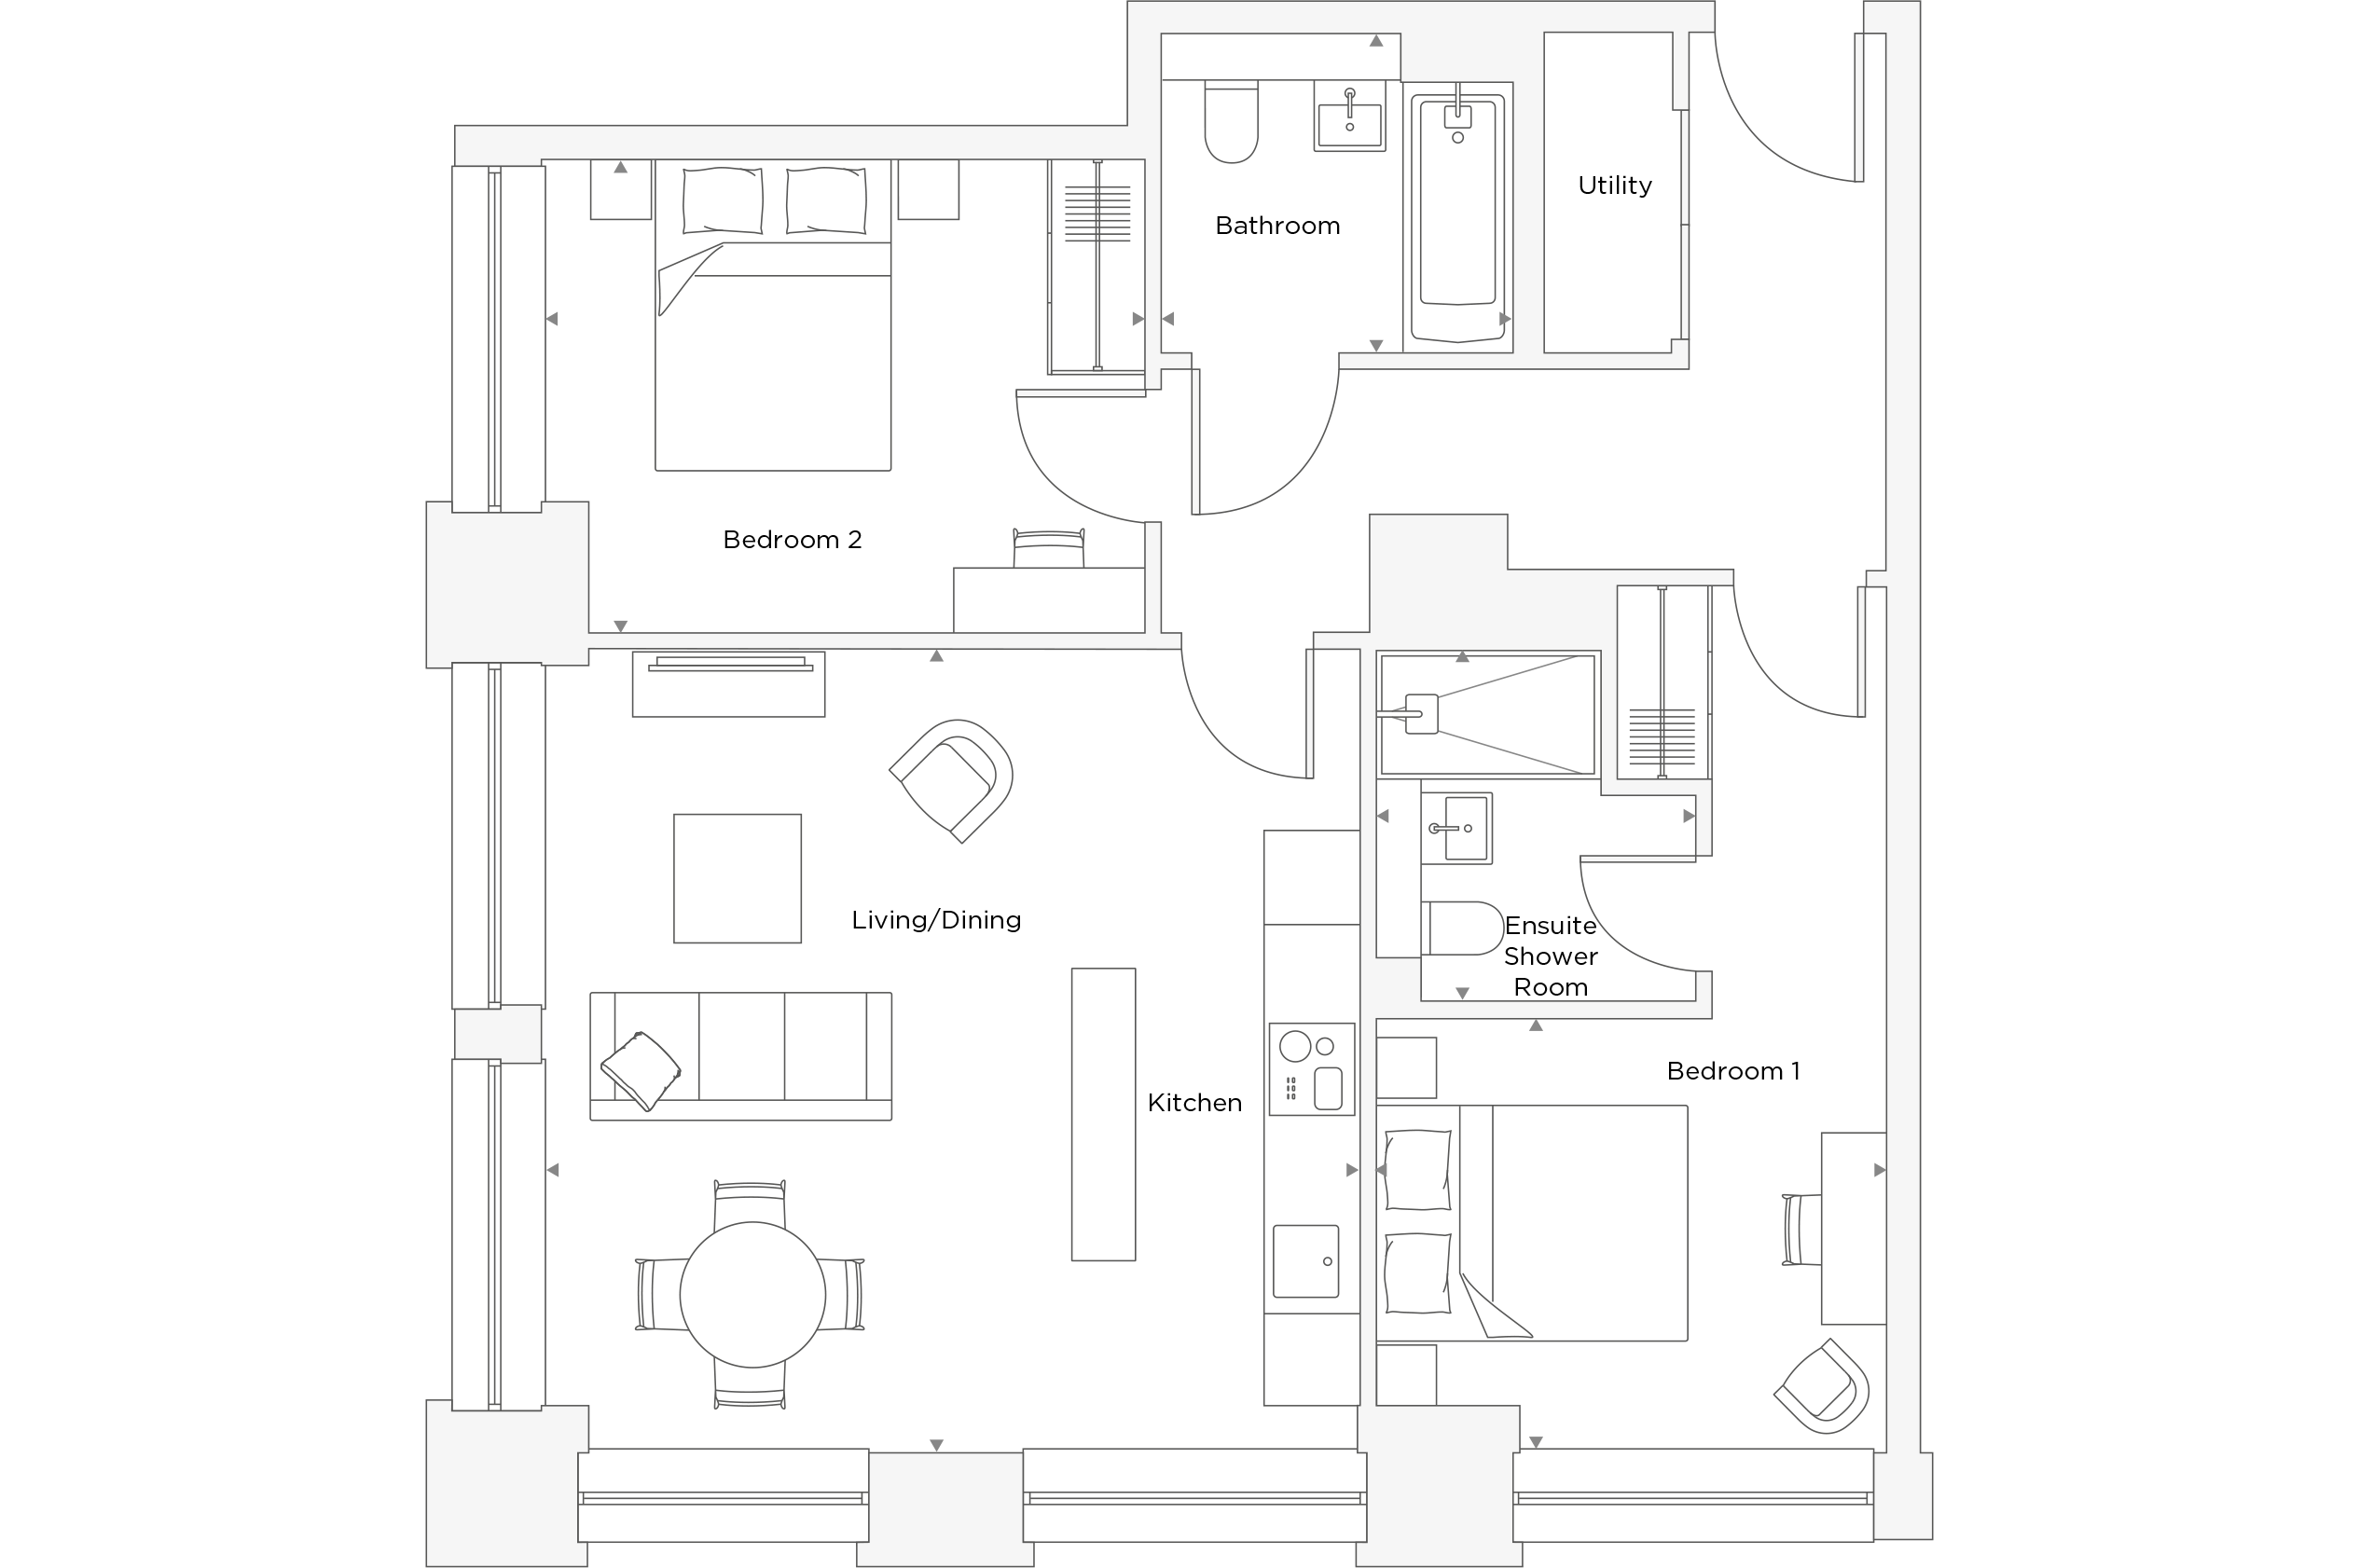 Two Bedroom Apartment A.0.13 Floor Plan